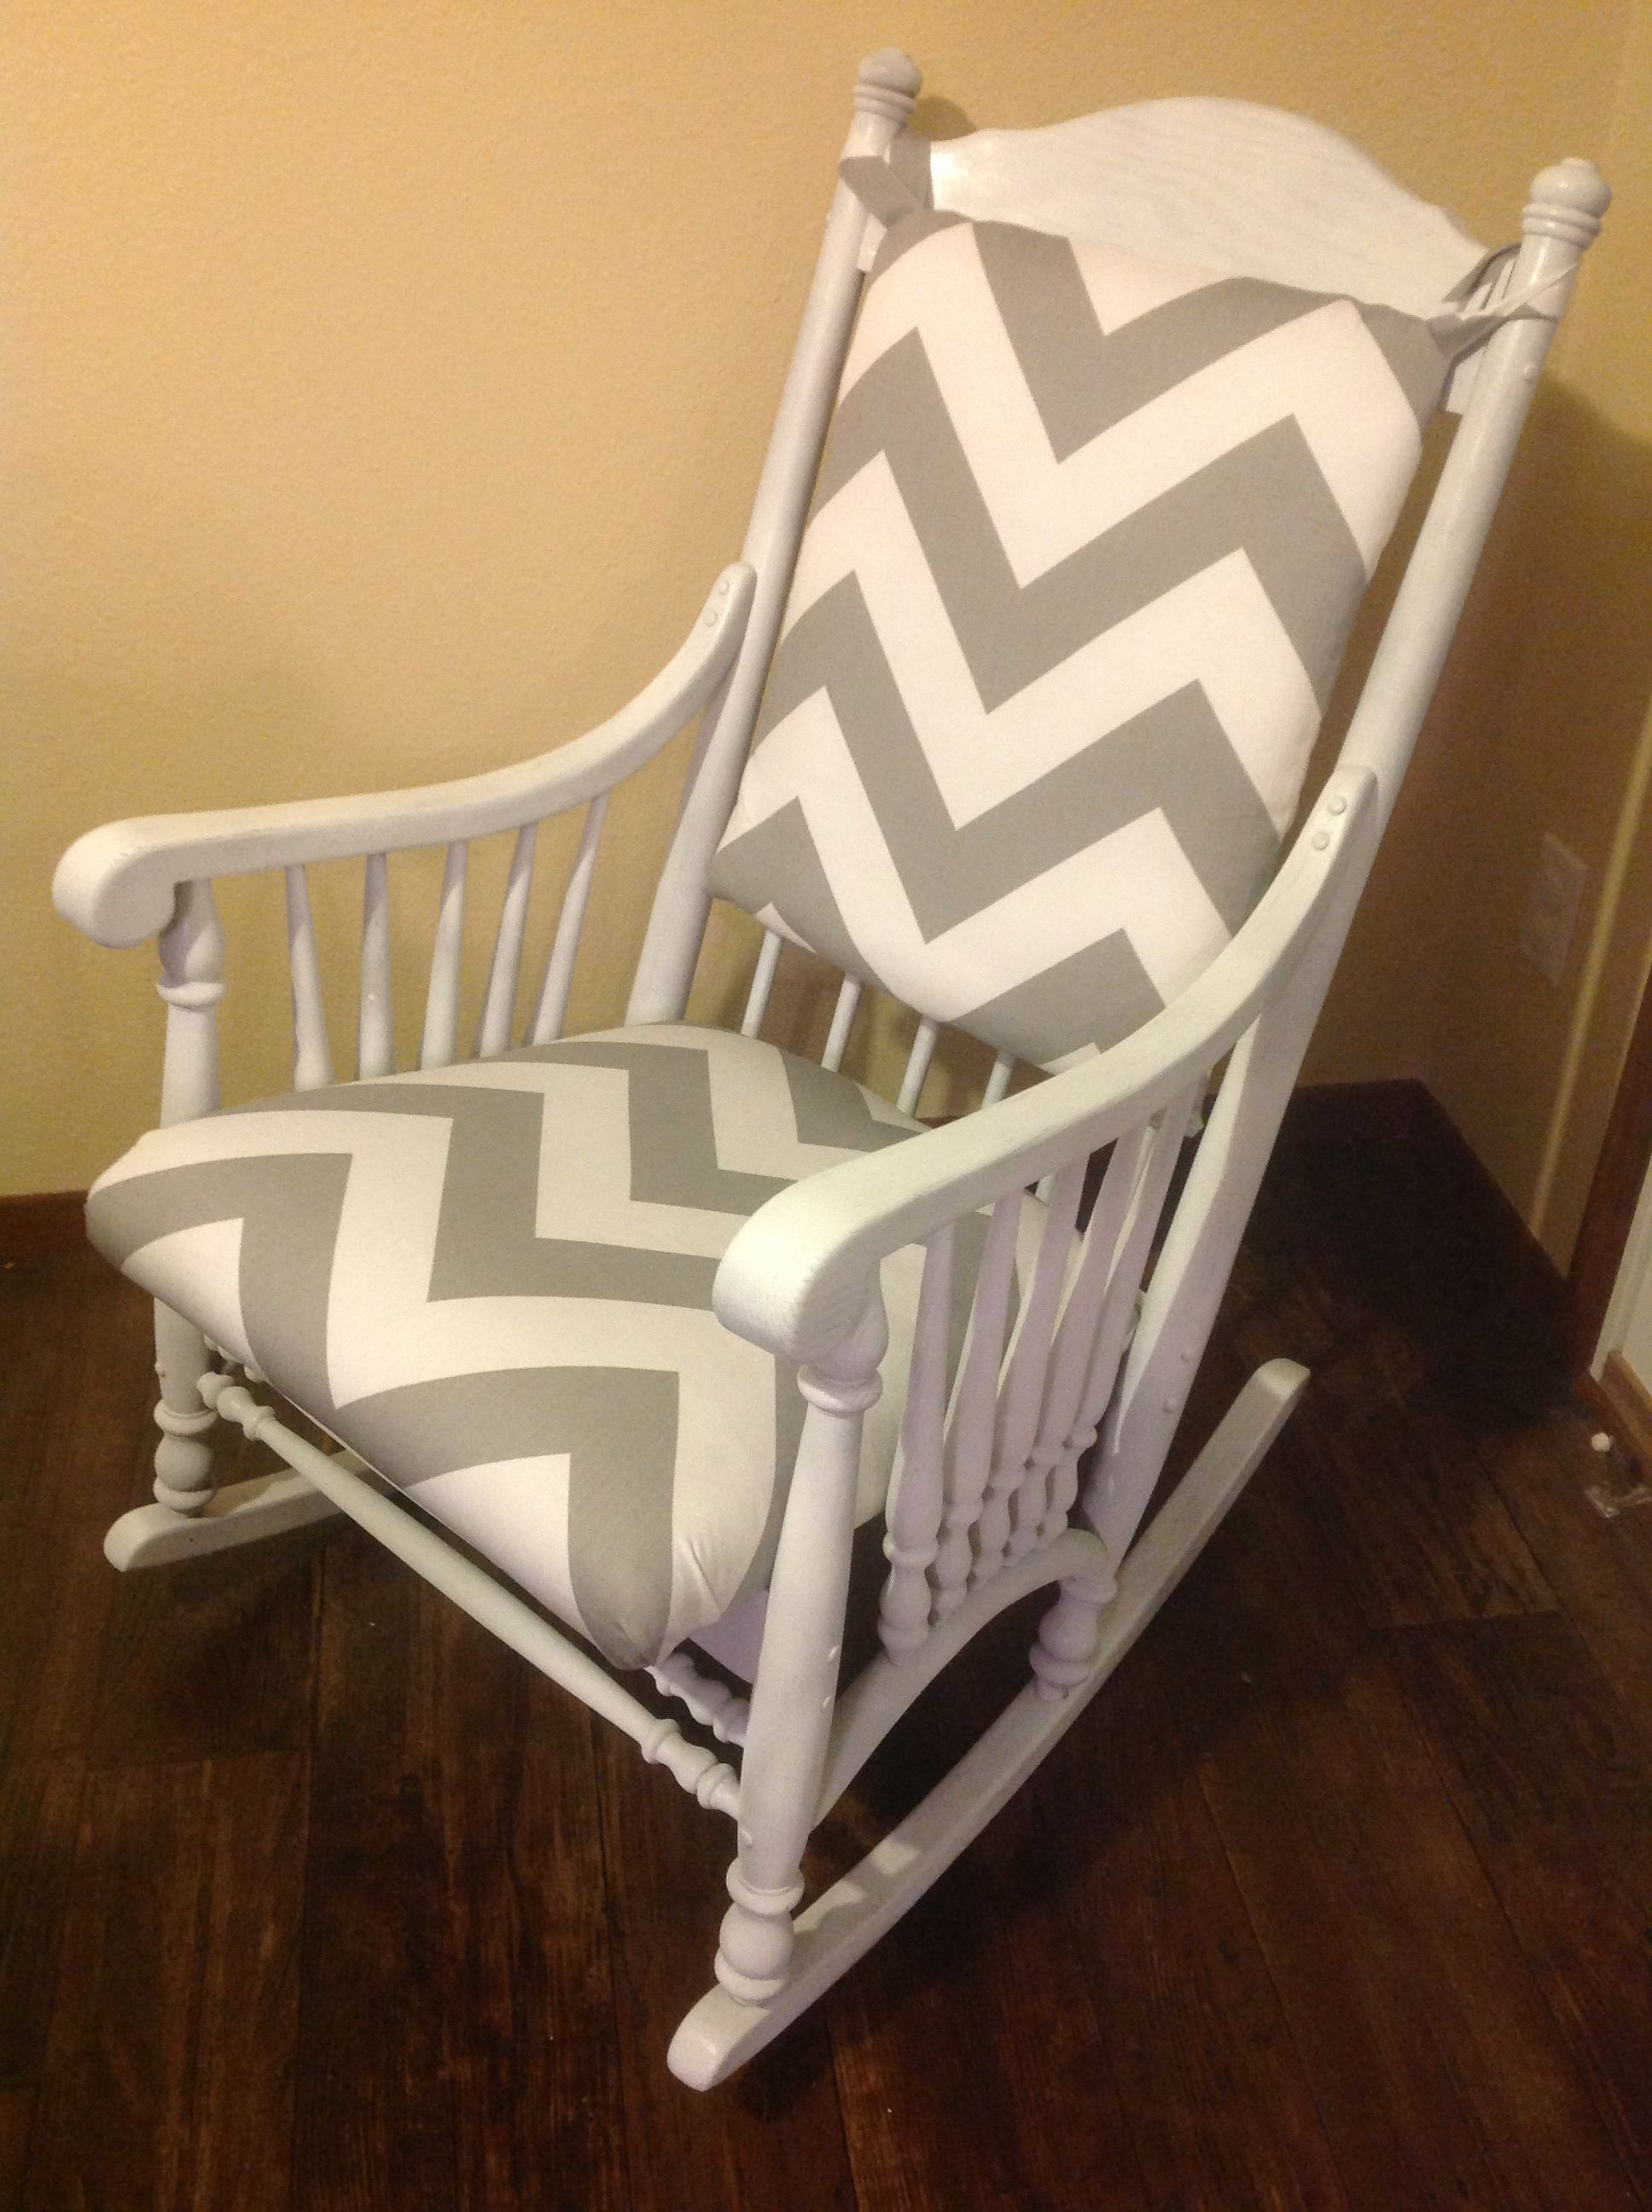 Just refinished this cute rocking chair with a white wash